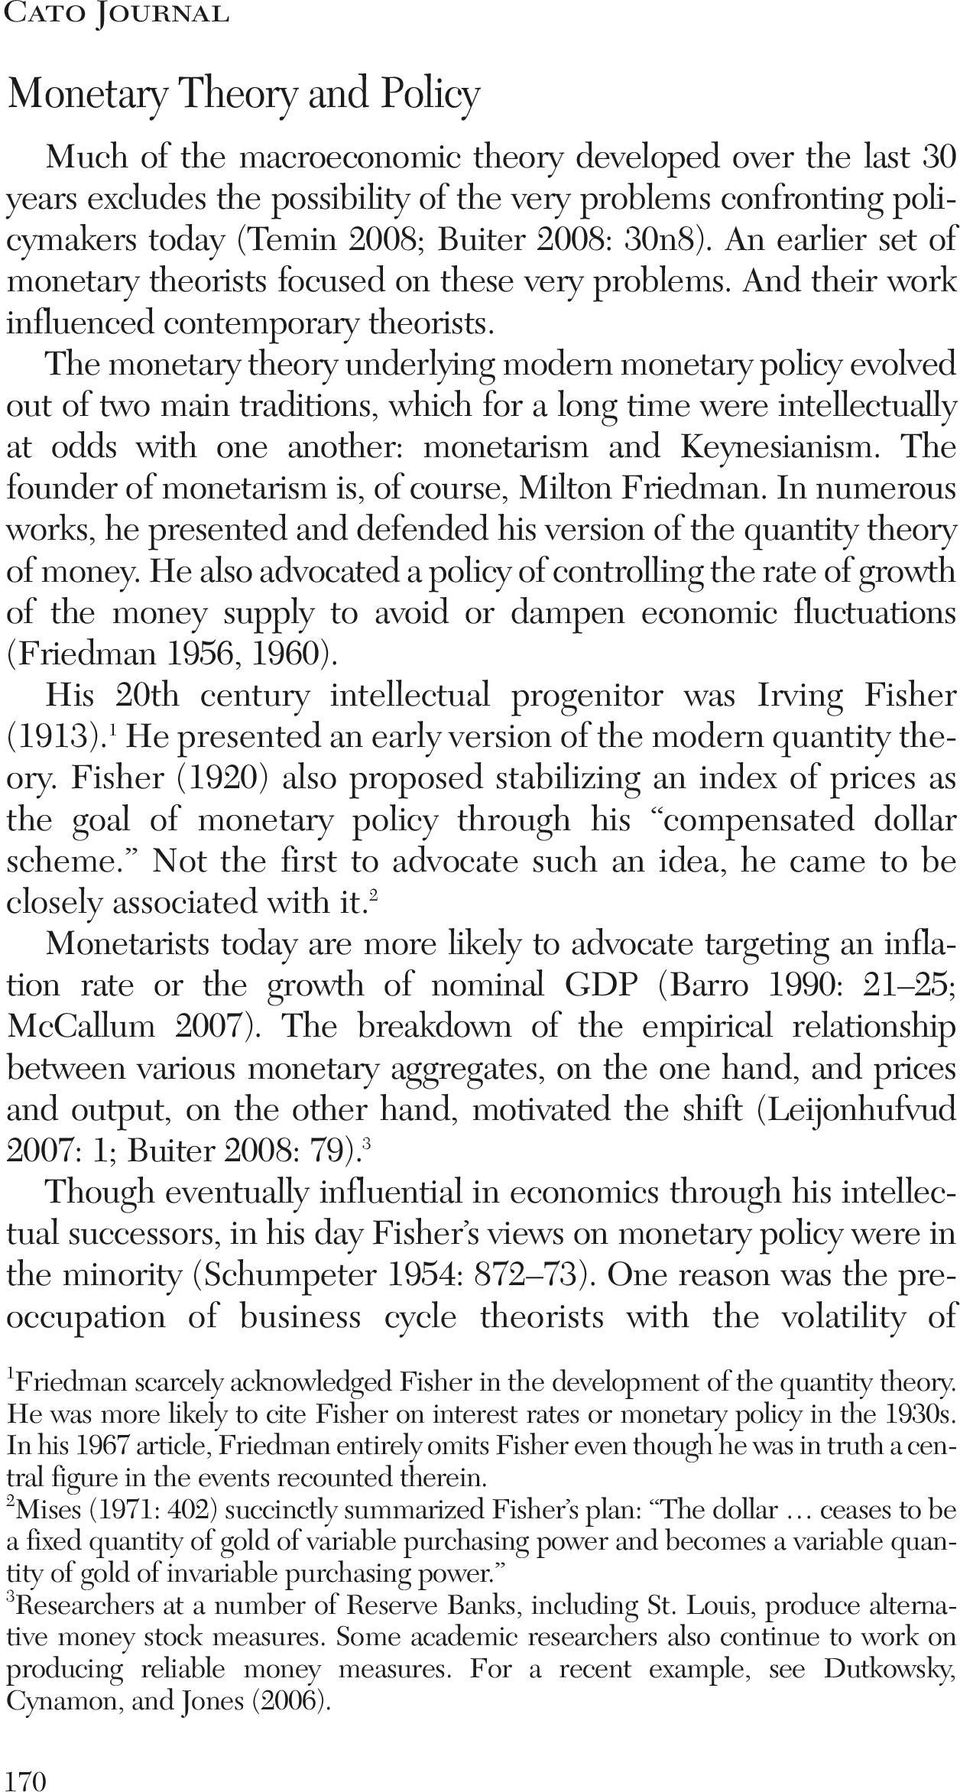 The monetary theory underlying modern monetary policy evolved out of two main traditions, which for a long time were intellectually at odds with one another: monetarism and Keynesianism.